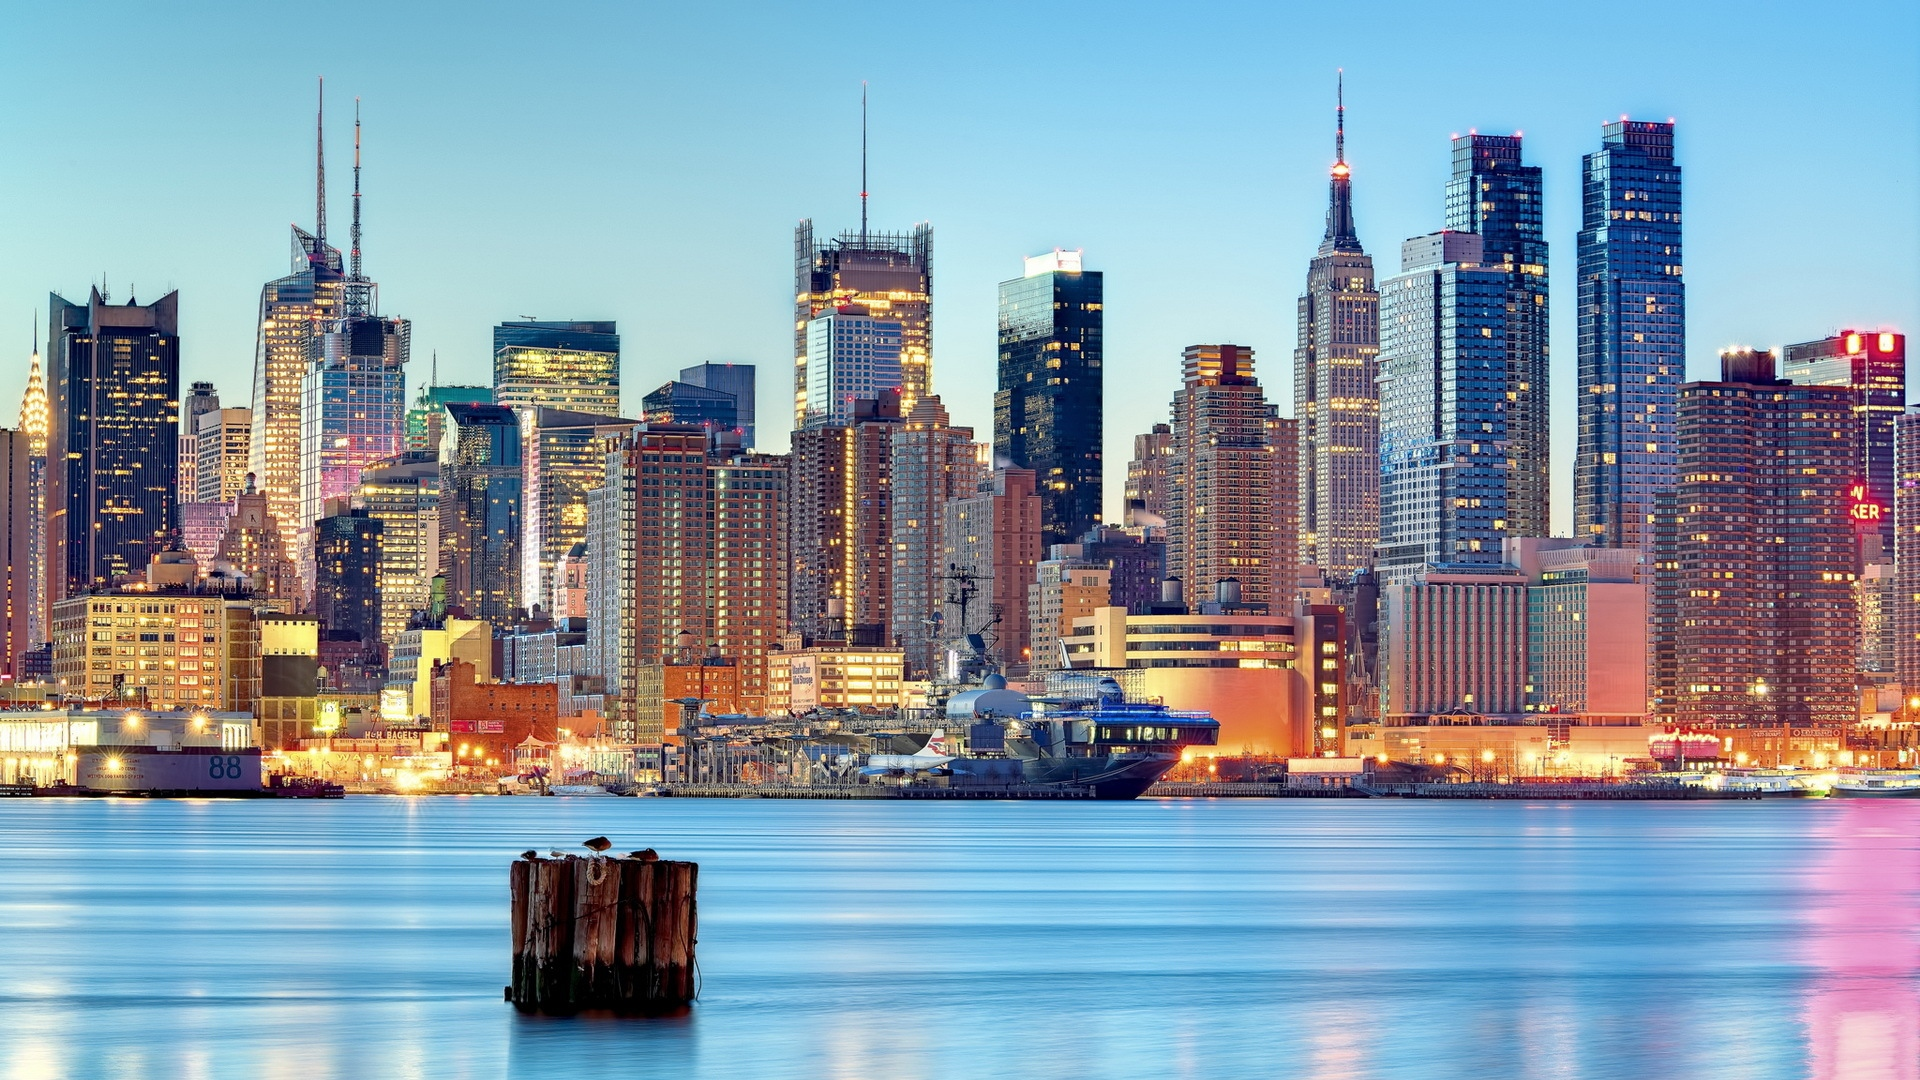 Download Wallpaper 1920x1080 Usa New Jersey Weehawken New York